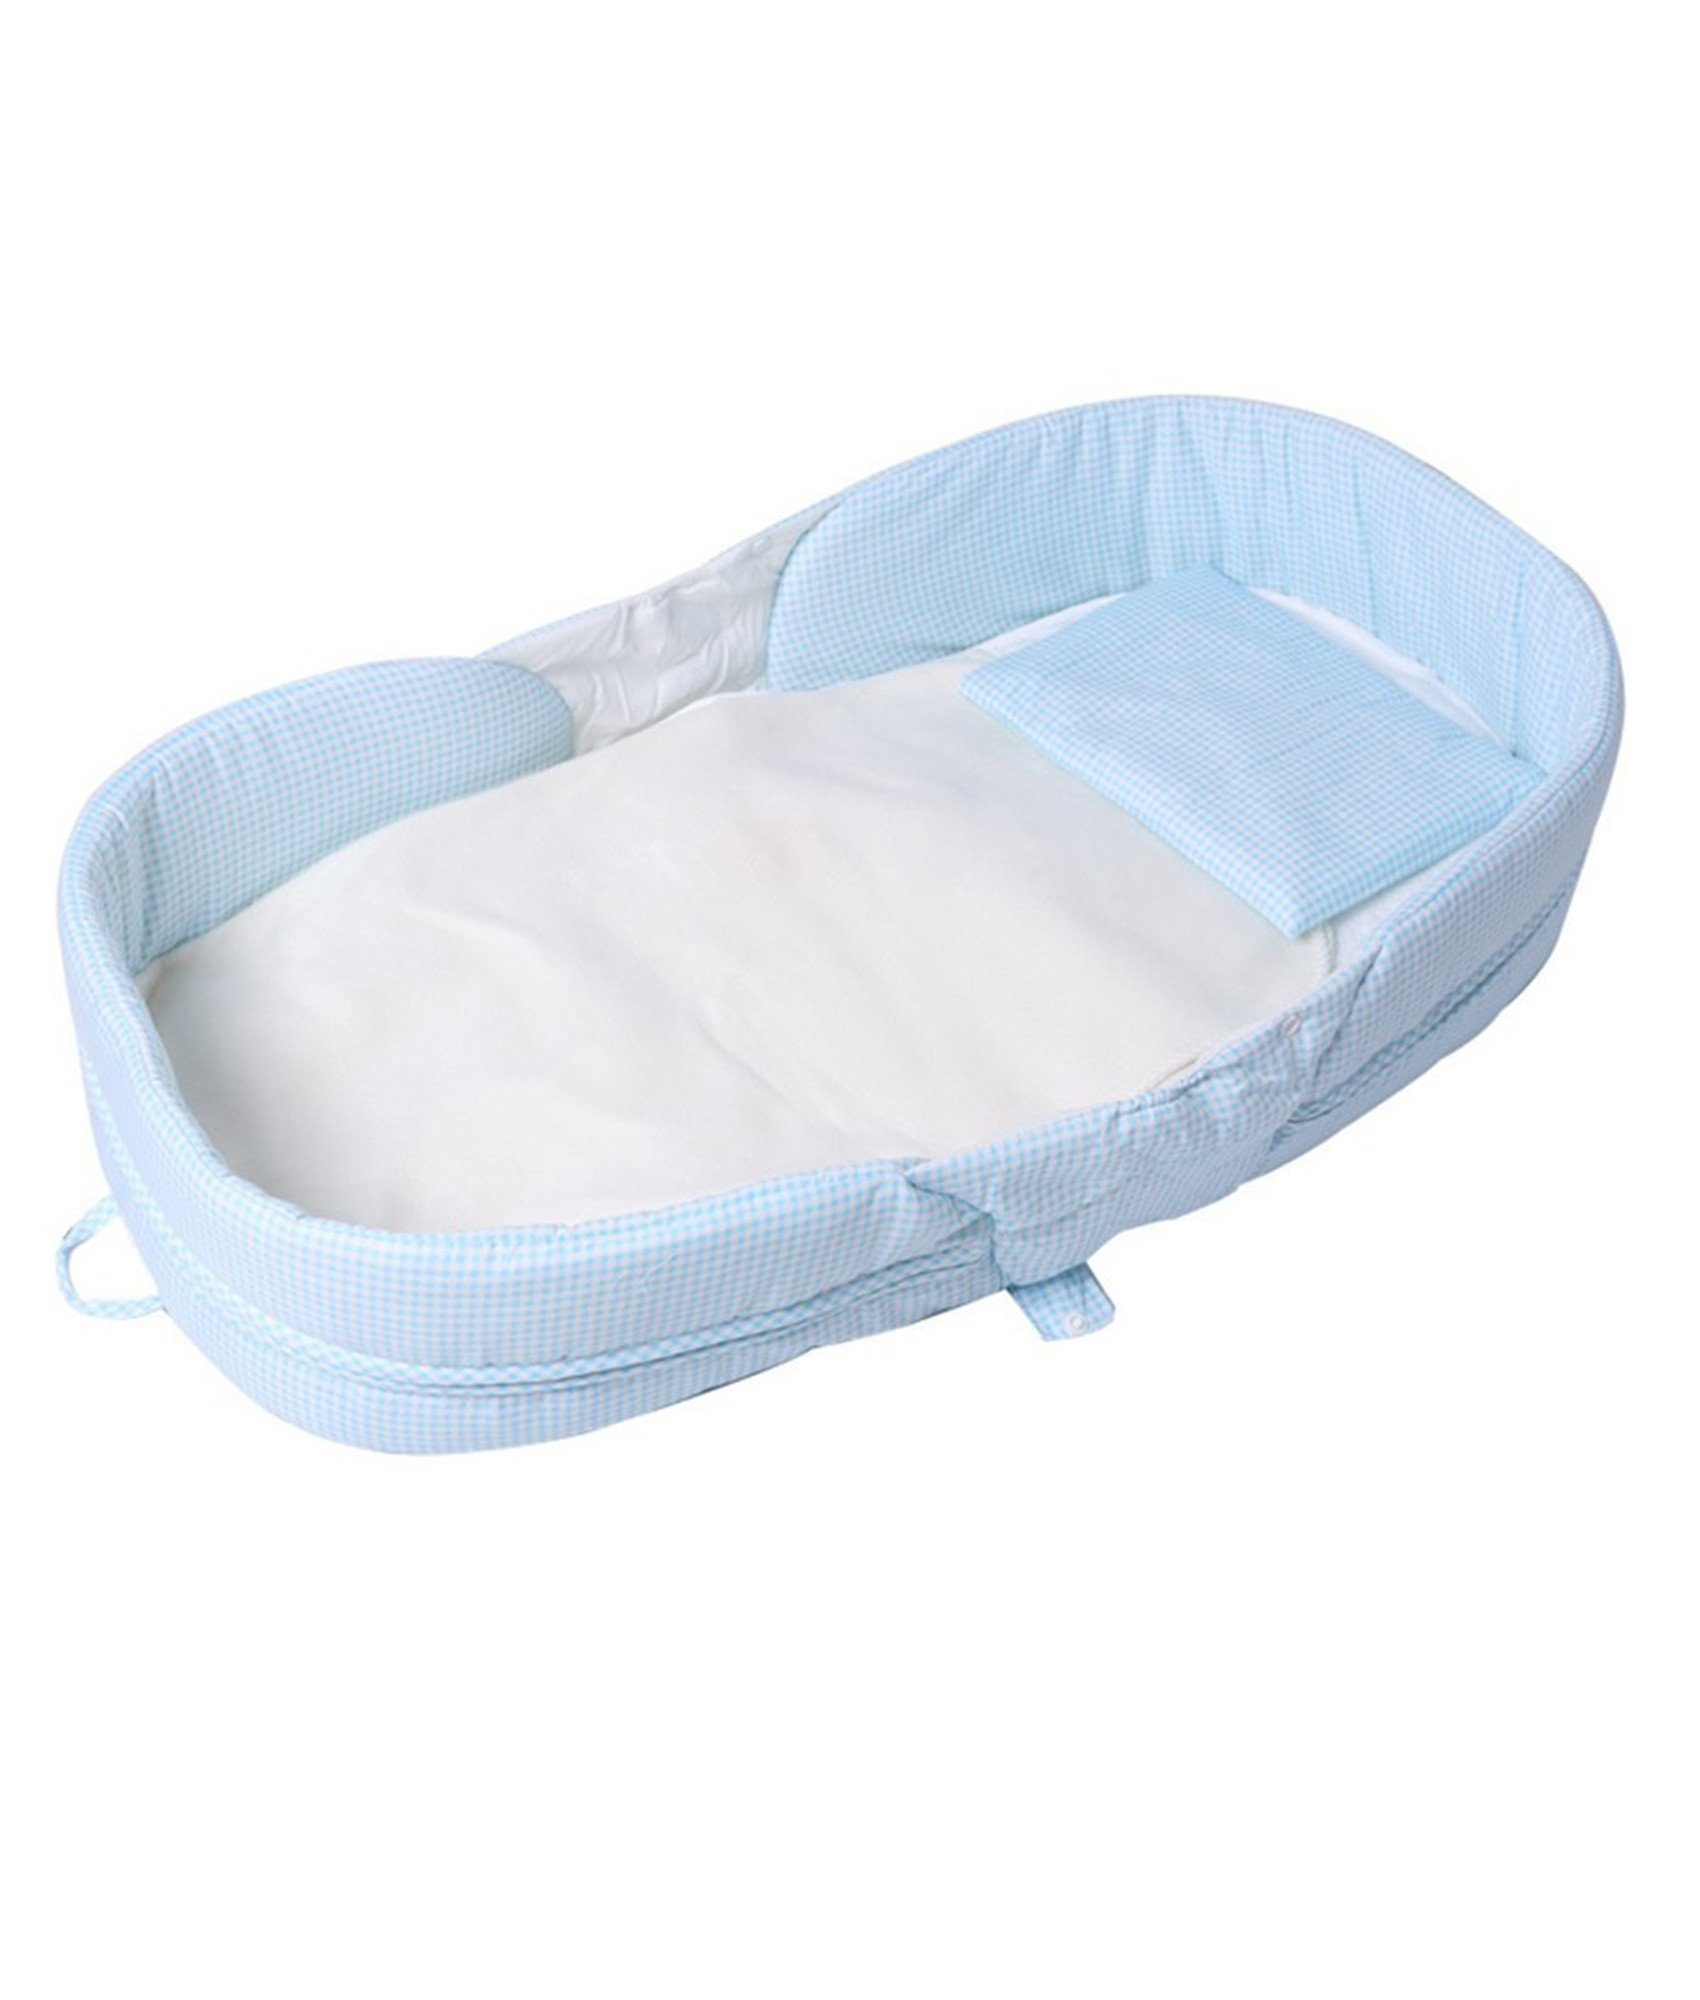 083deae5242 Labebe Baby 2 in 1 FOLD   GO Foldable Travel Bed Bassinet Convertible to  Diaper Changing MAT for Infants up to 1 Year